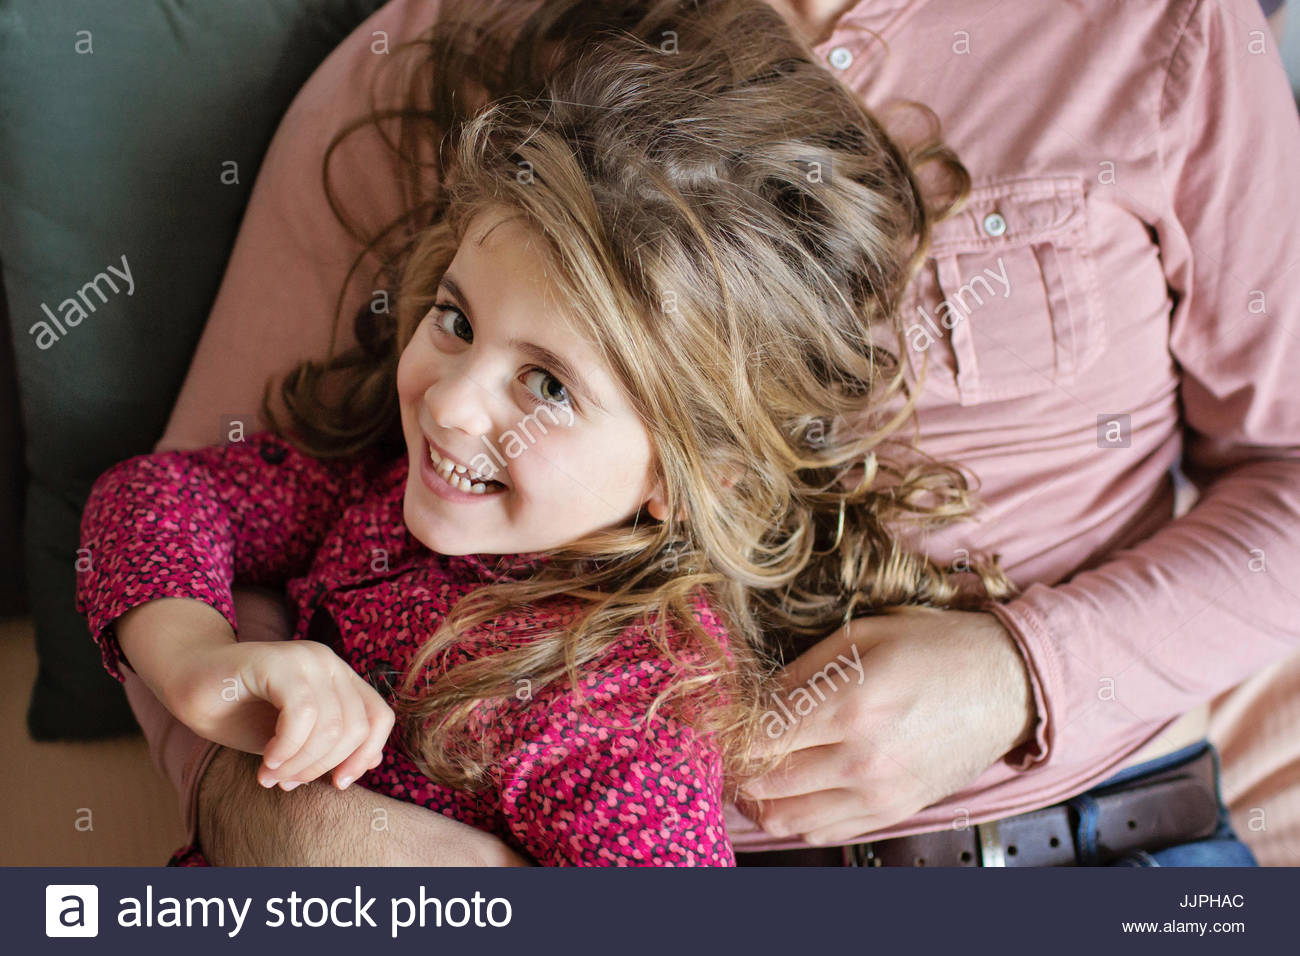 High angle view of smiling girl with tousled brown hair sitting on a mans lap. - Stock Image